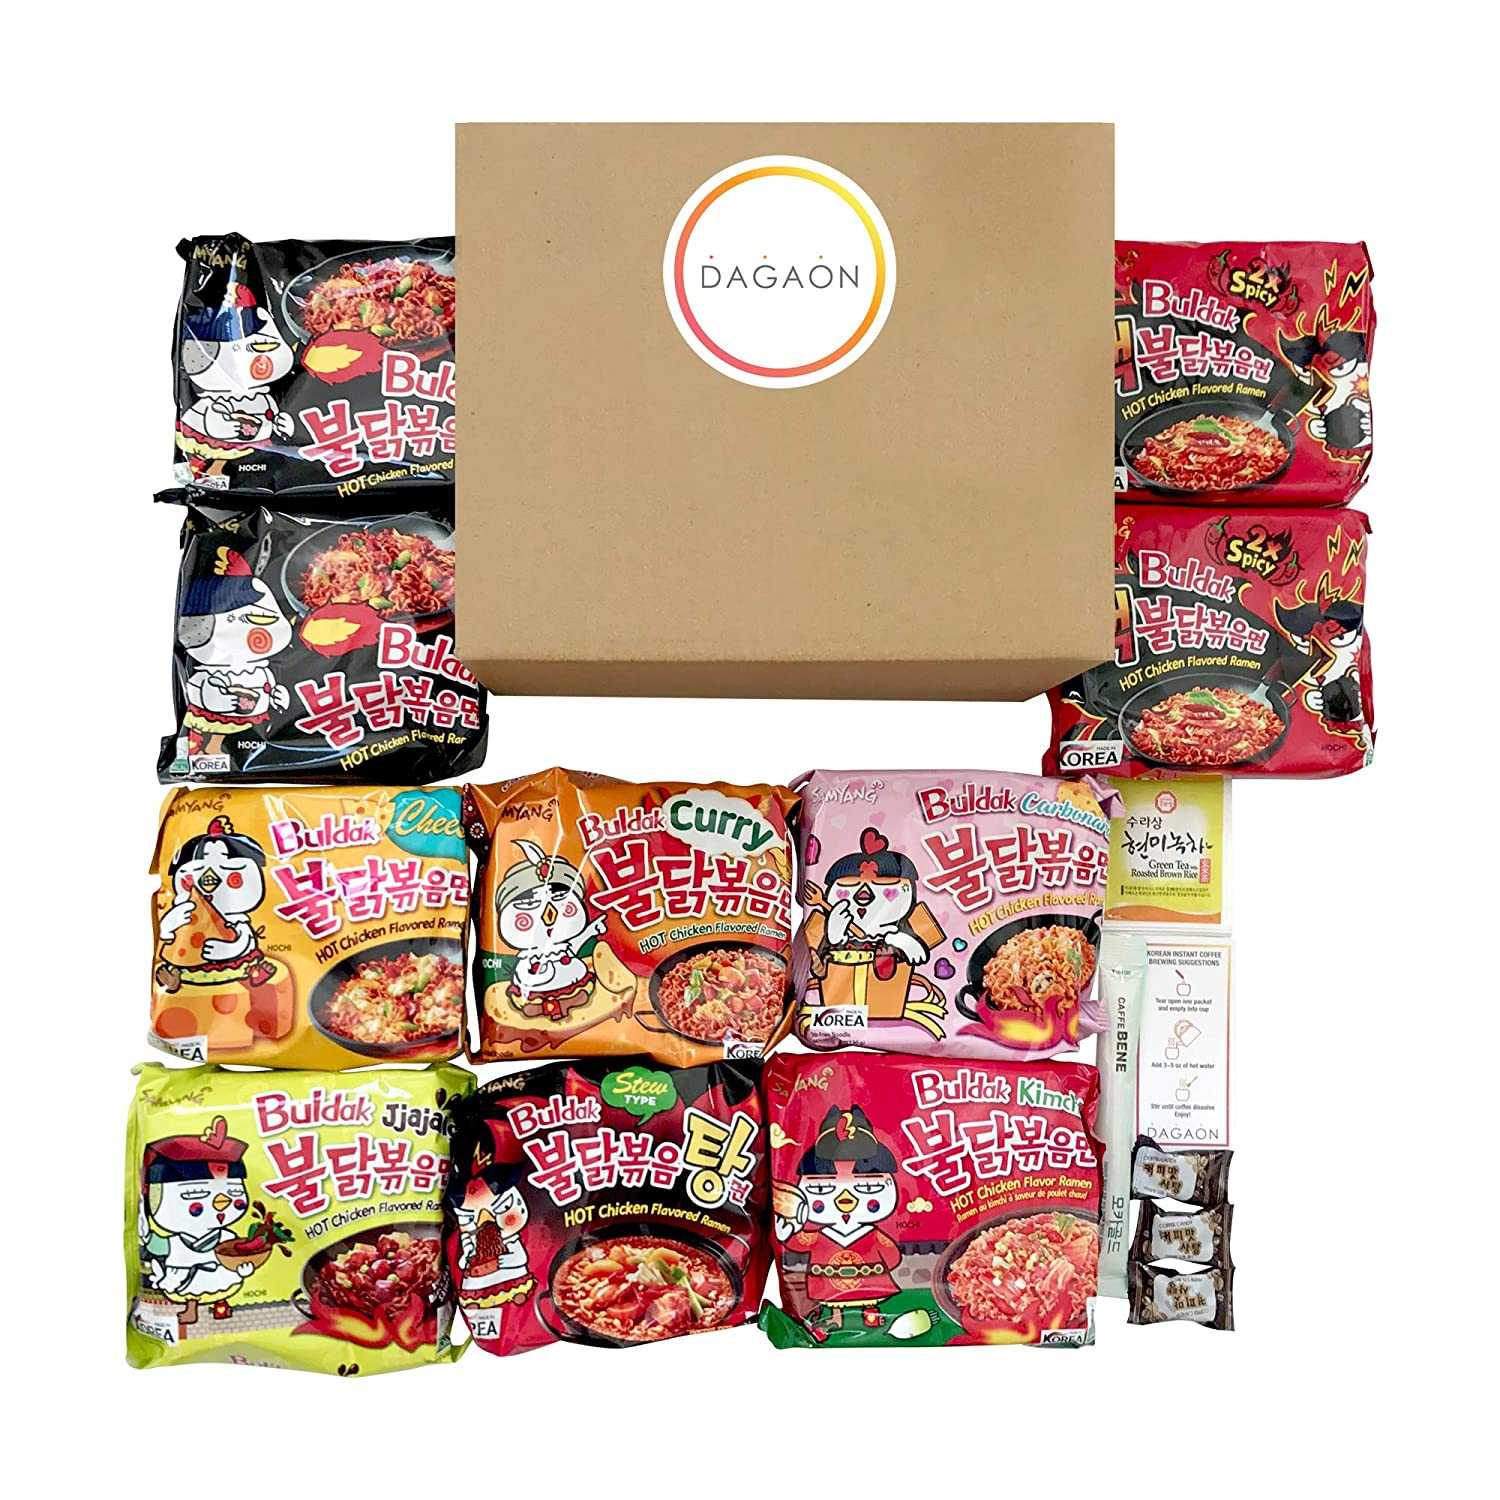 Dagaon Spicy Chicken Ramen Samyang Buldak Noodle Variety Pack – 10 Combo Packs of 8 Different Flavors (2 Packs of Original and 2x Spicy. 1 Pack of Carbonara, Jjajang, Curry, Cheese, Kimchi and Stew Type). Great for Spicy Food Fans.